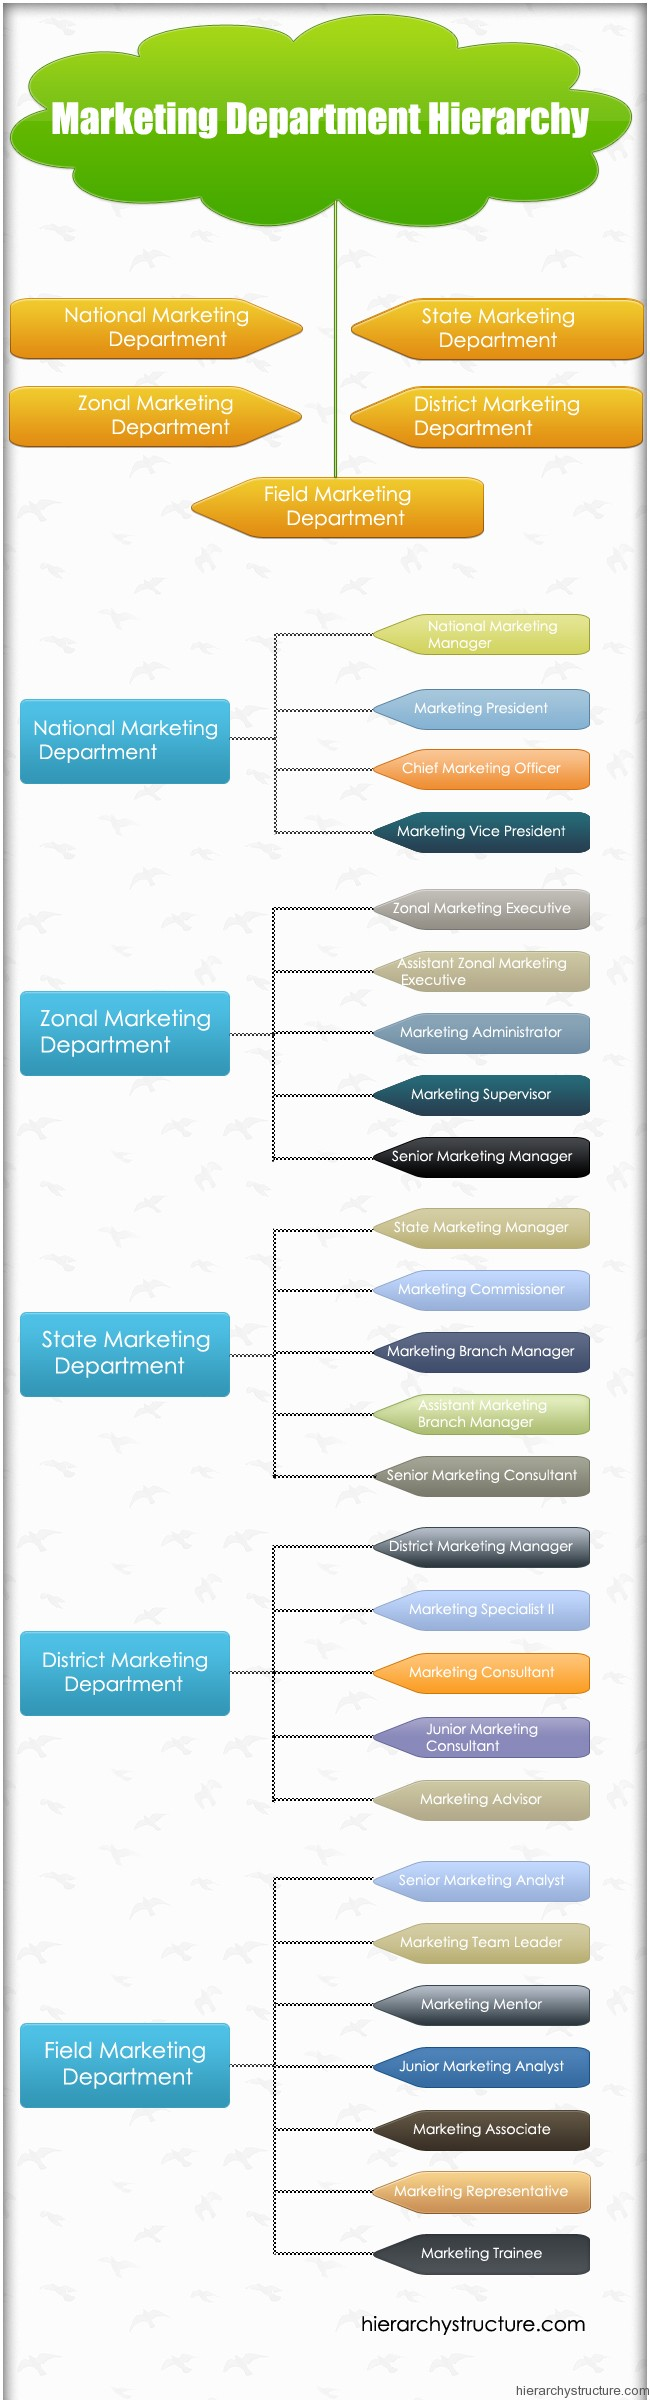 Marketing Department Hierarchy